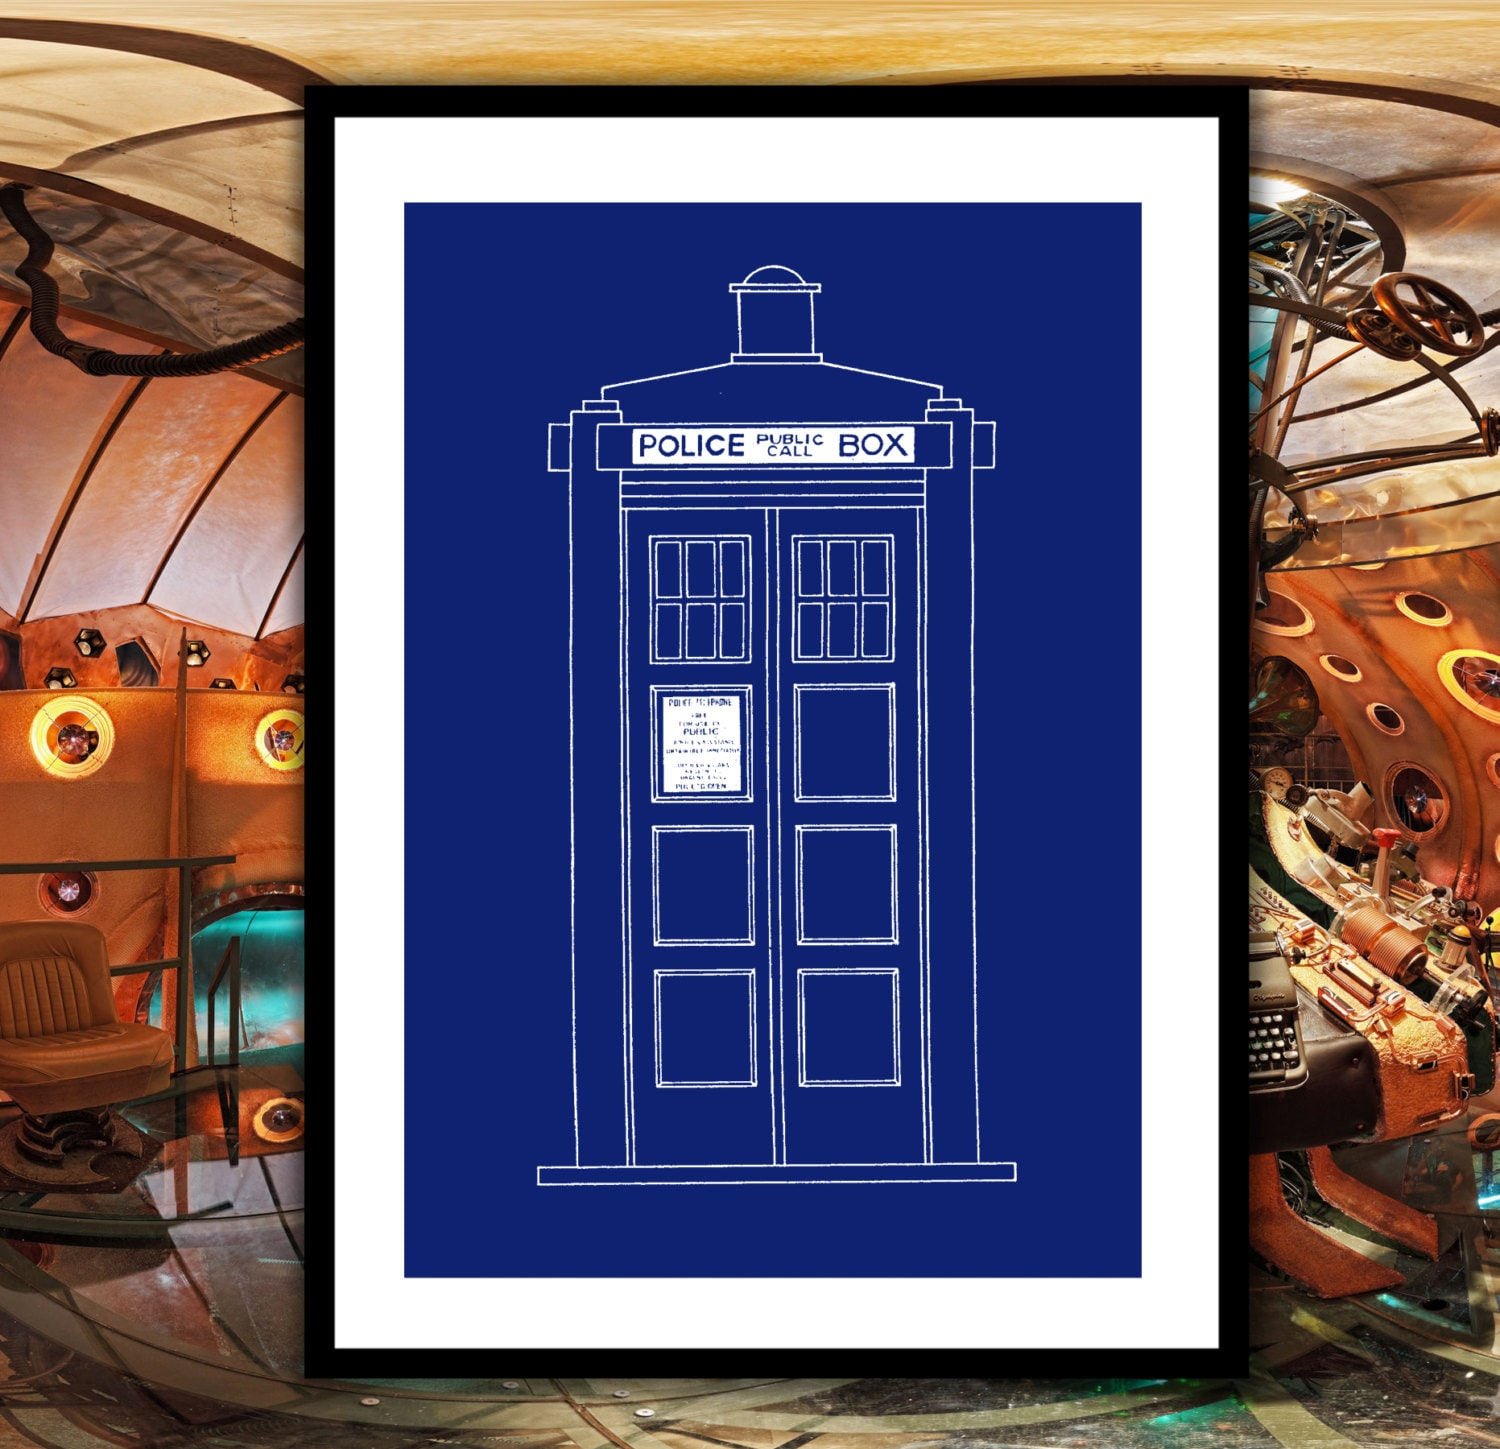 Doctor who tardis patent dr who tardis poster tardis blueprint doctor who tardis patent dr who tardis poster tardis blueprint dr who tardis print dr who art doctor who tardis decor p096 malvernweather Images